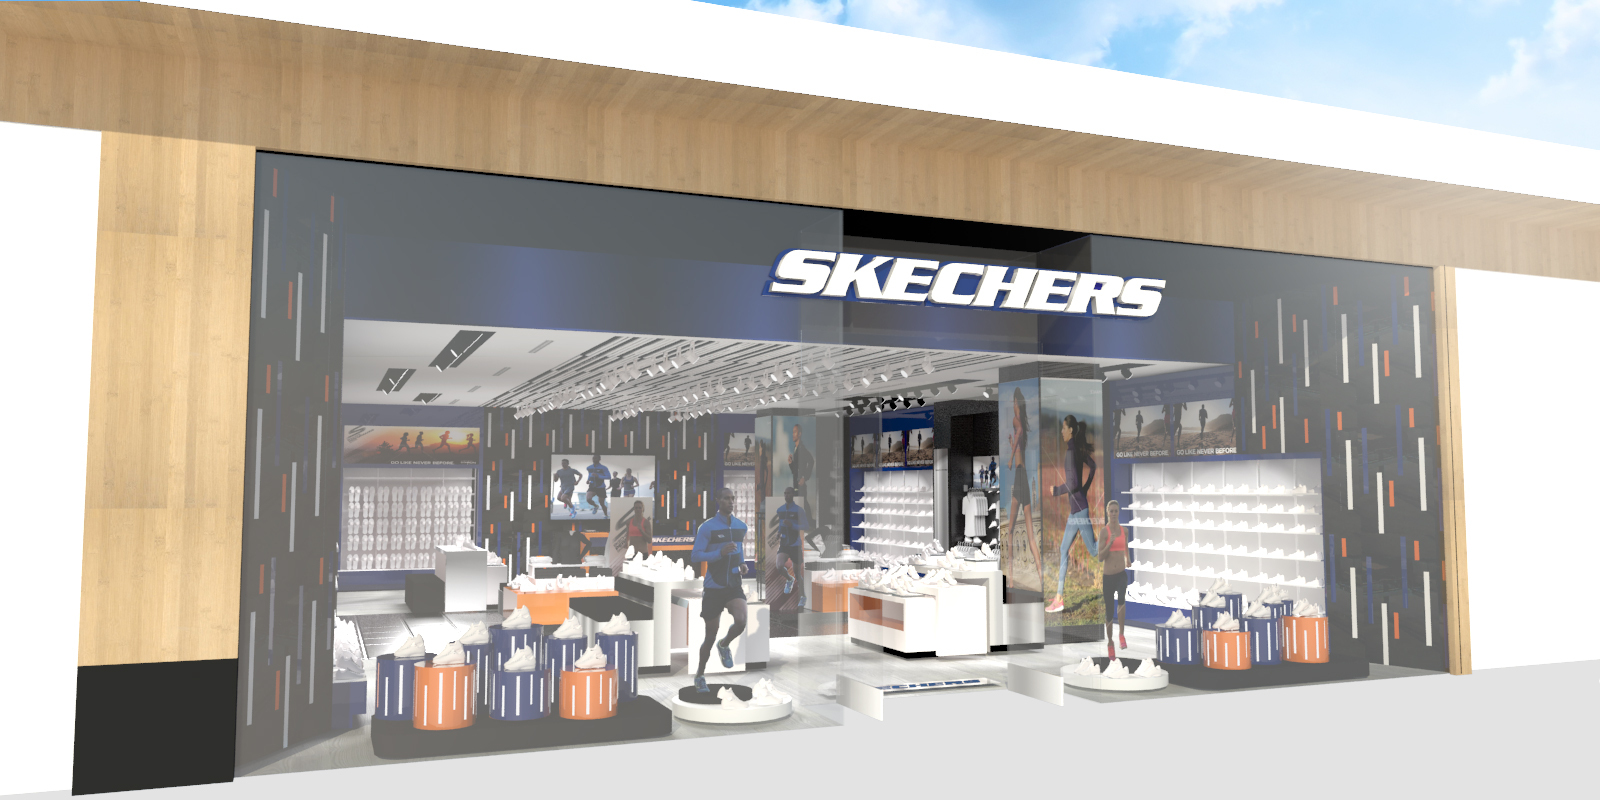 Skechers One World Trade Center Storefront - Skechers inaugura flagship store en Estados Unidos